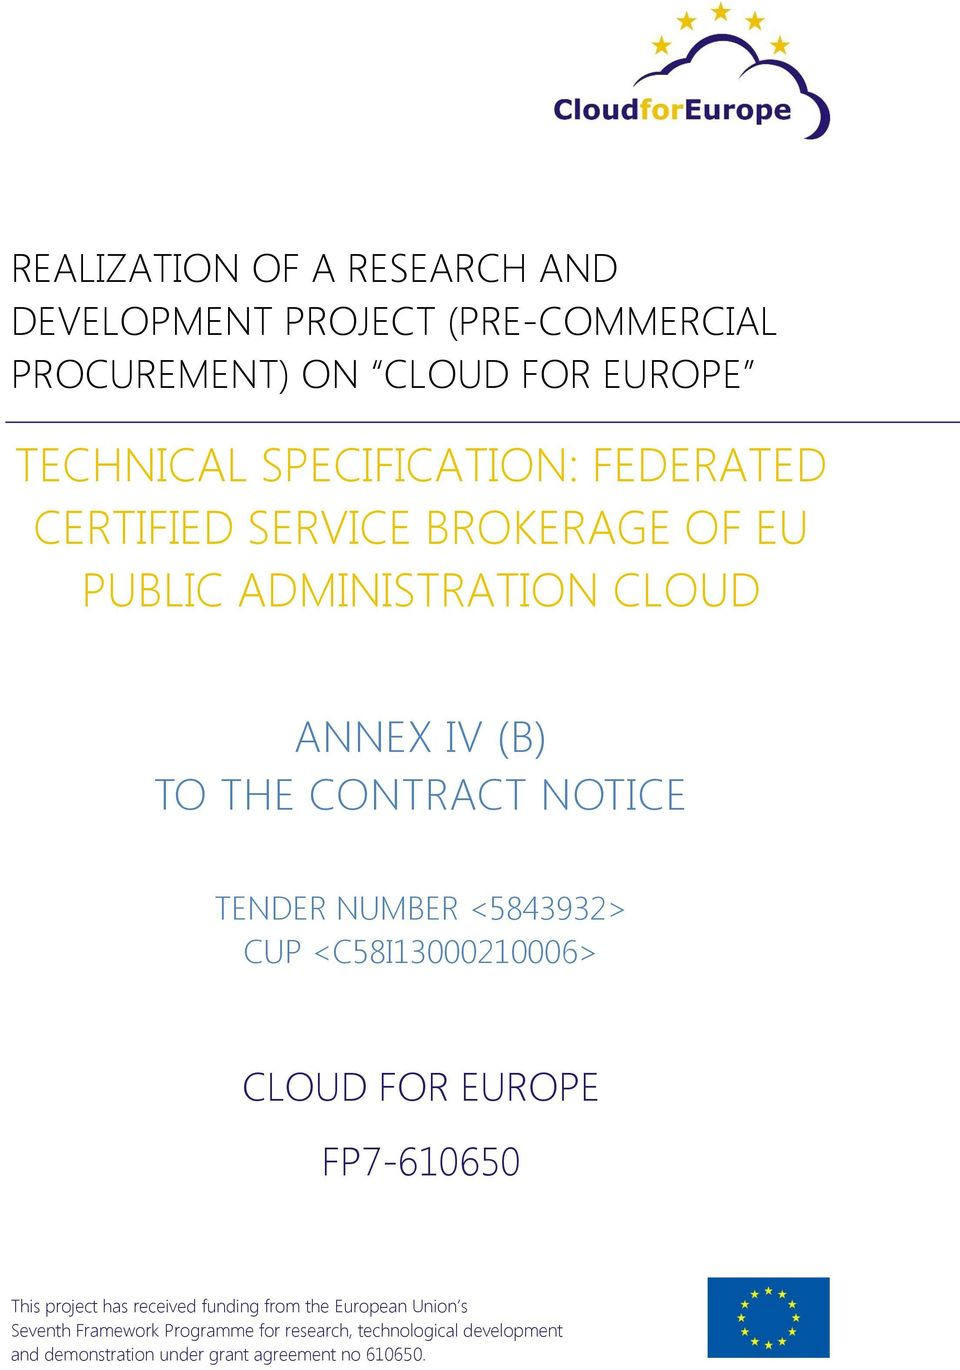 NOTICE TENDER NUMBER <5843932> CUP <C58I13000210006> CLOUD FOR EUROPE FP7-610650 This project has received funding from